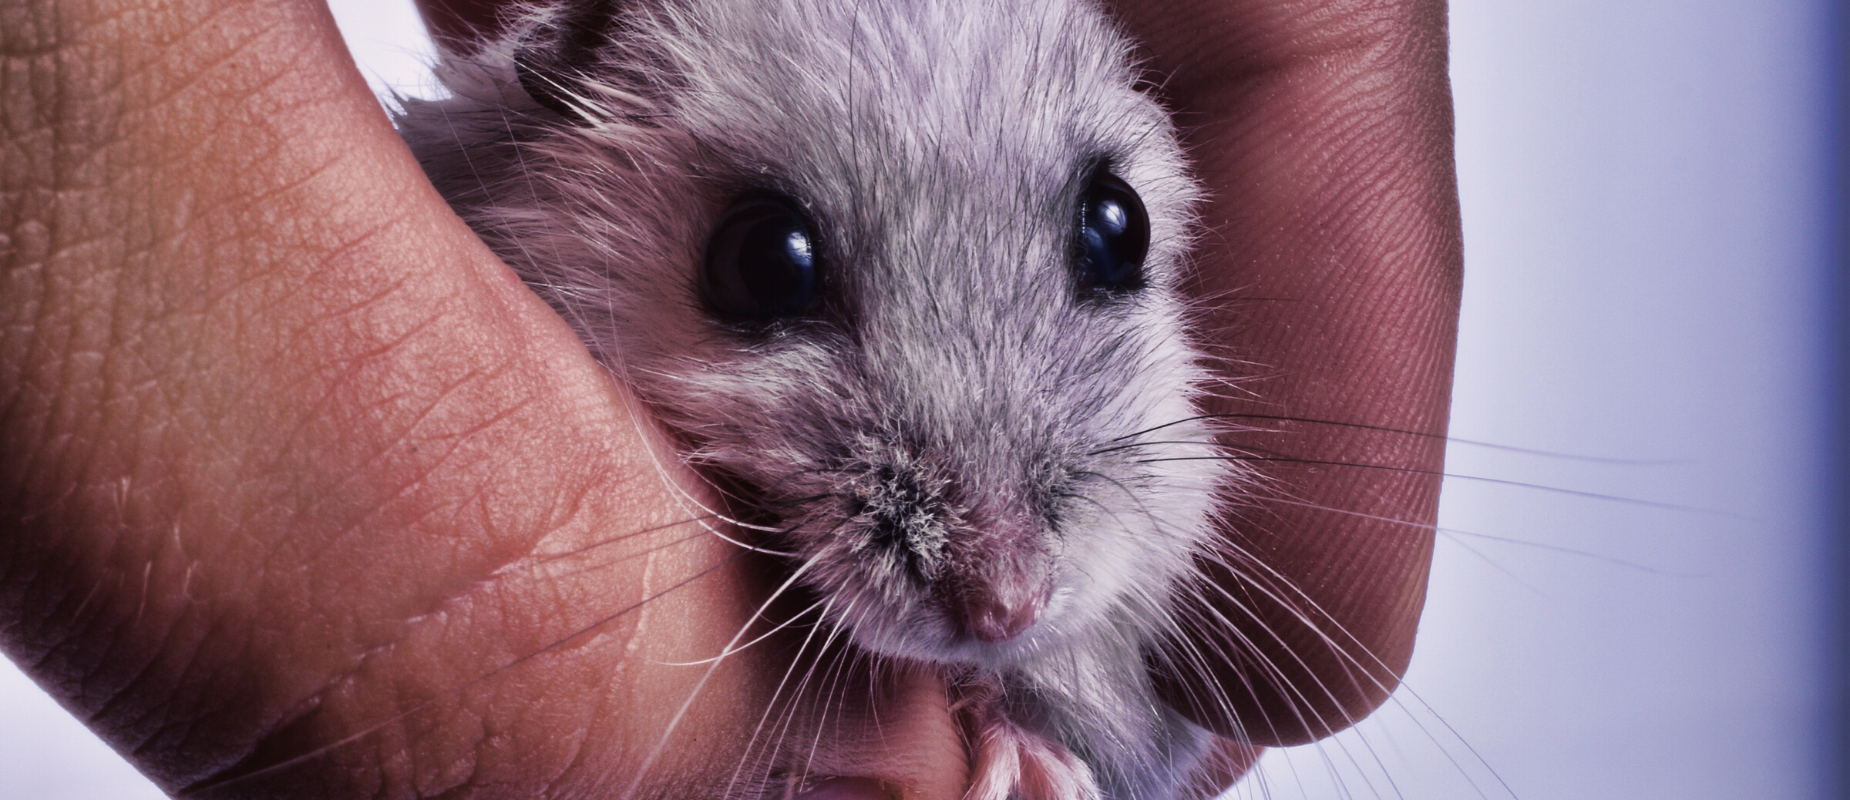 A small grey rodent peers between human fingers